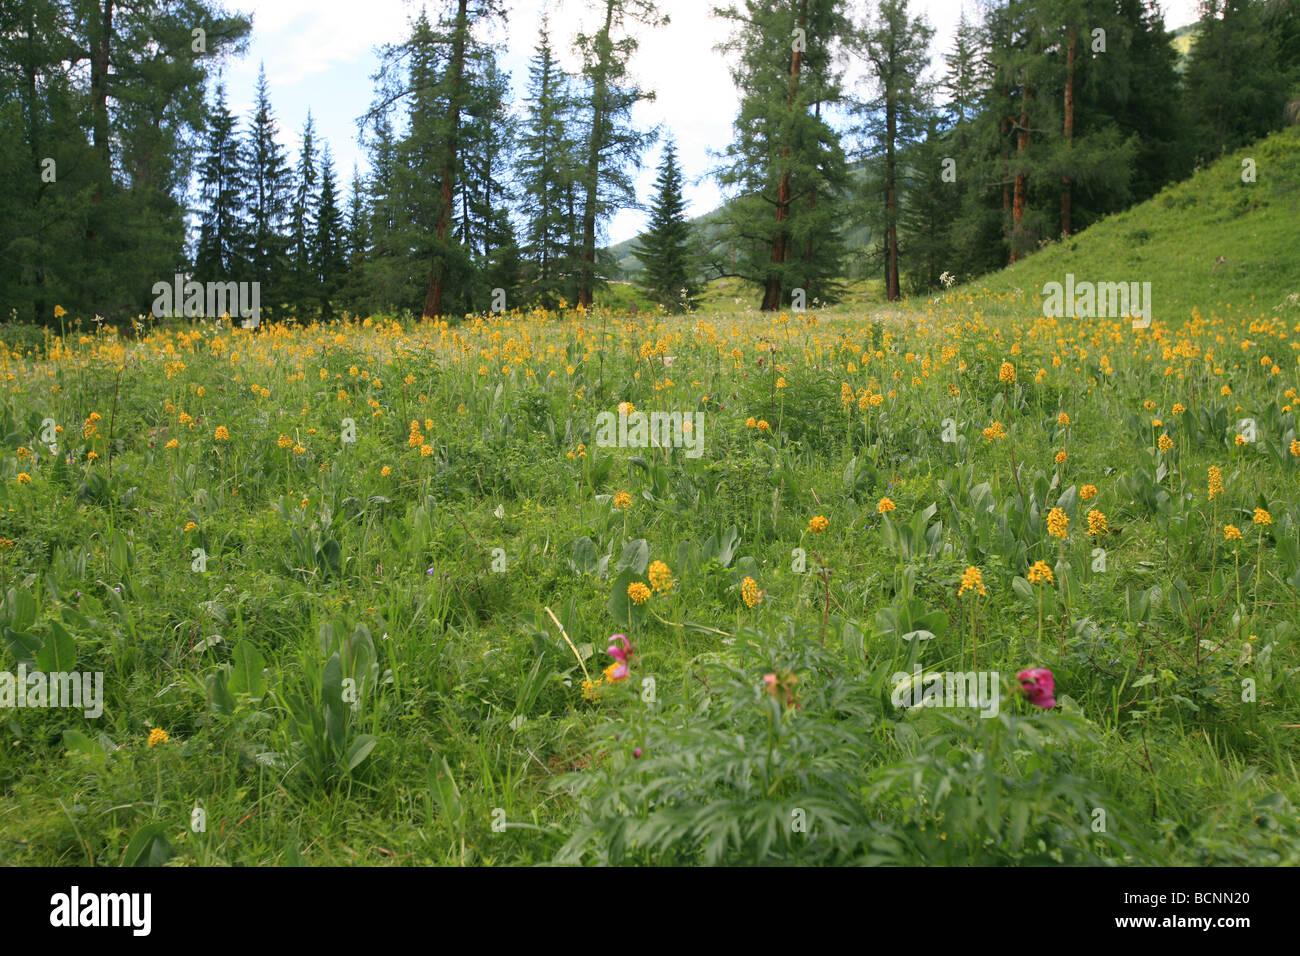 Grassland and forest, Kanas Conservation, Xinjiang Uyghur Autonomous Region, China - Stock Image